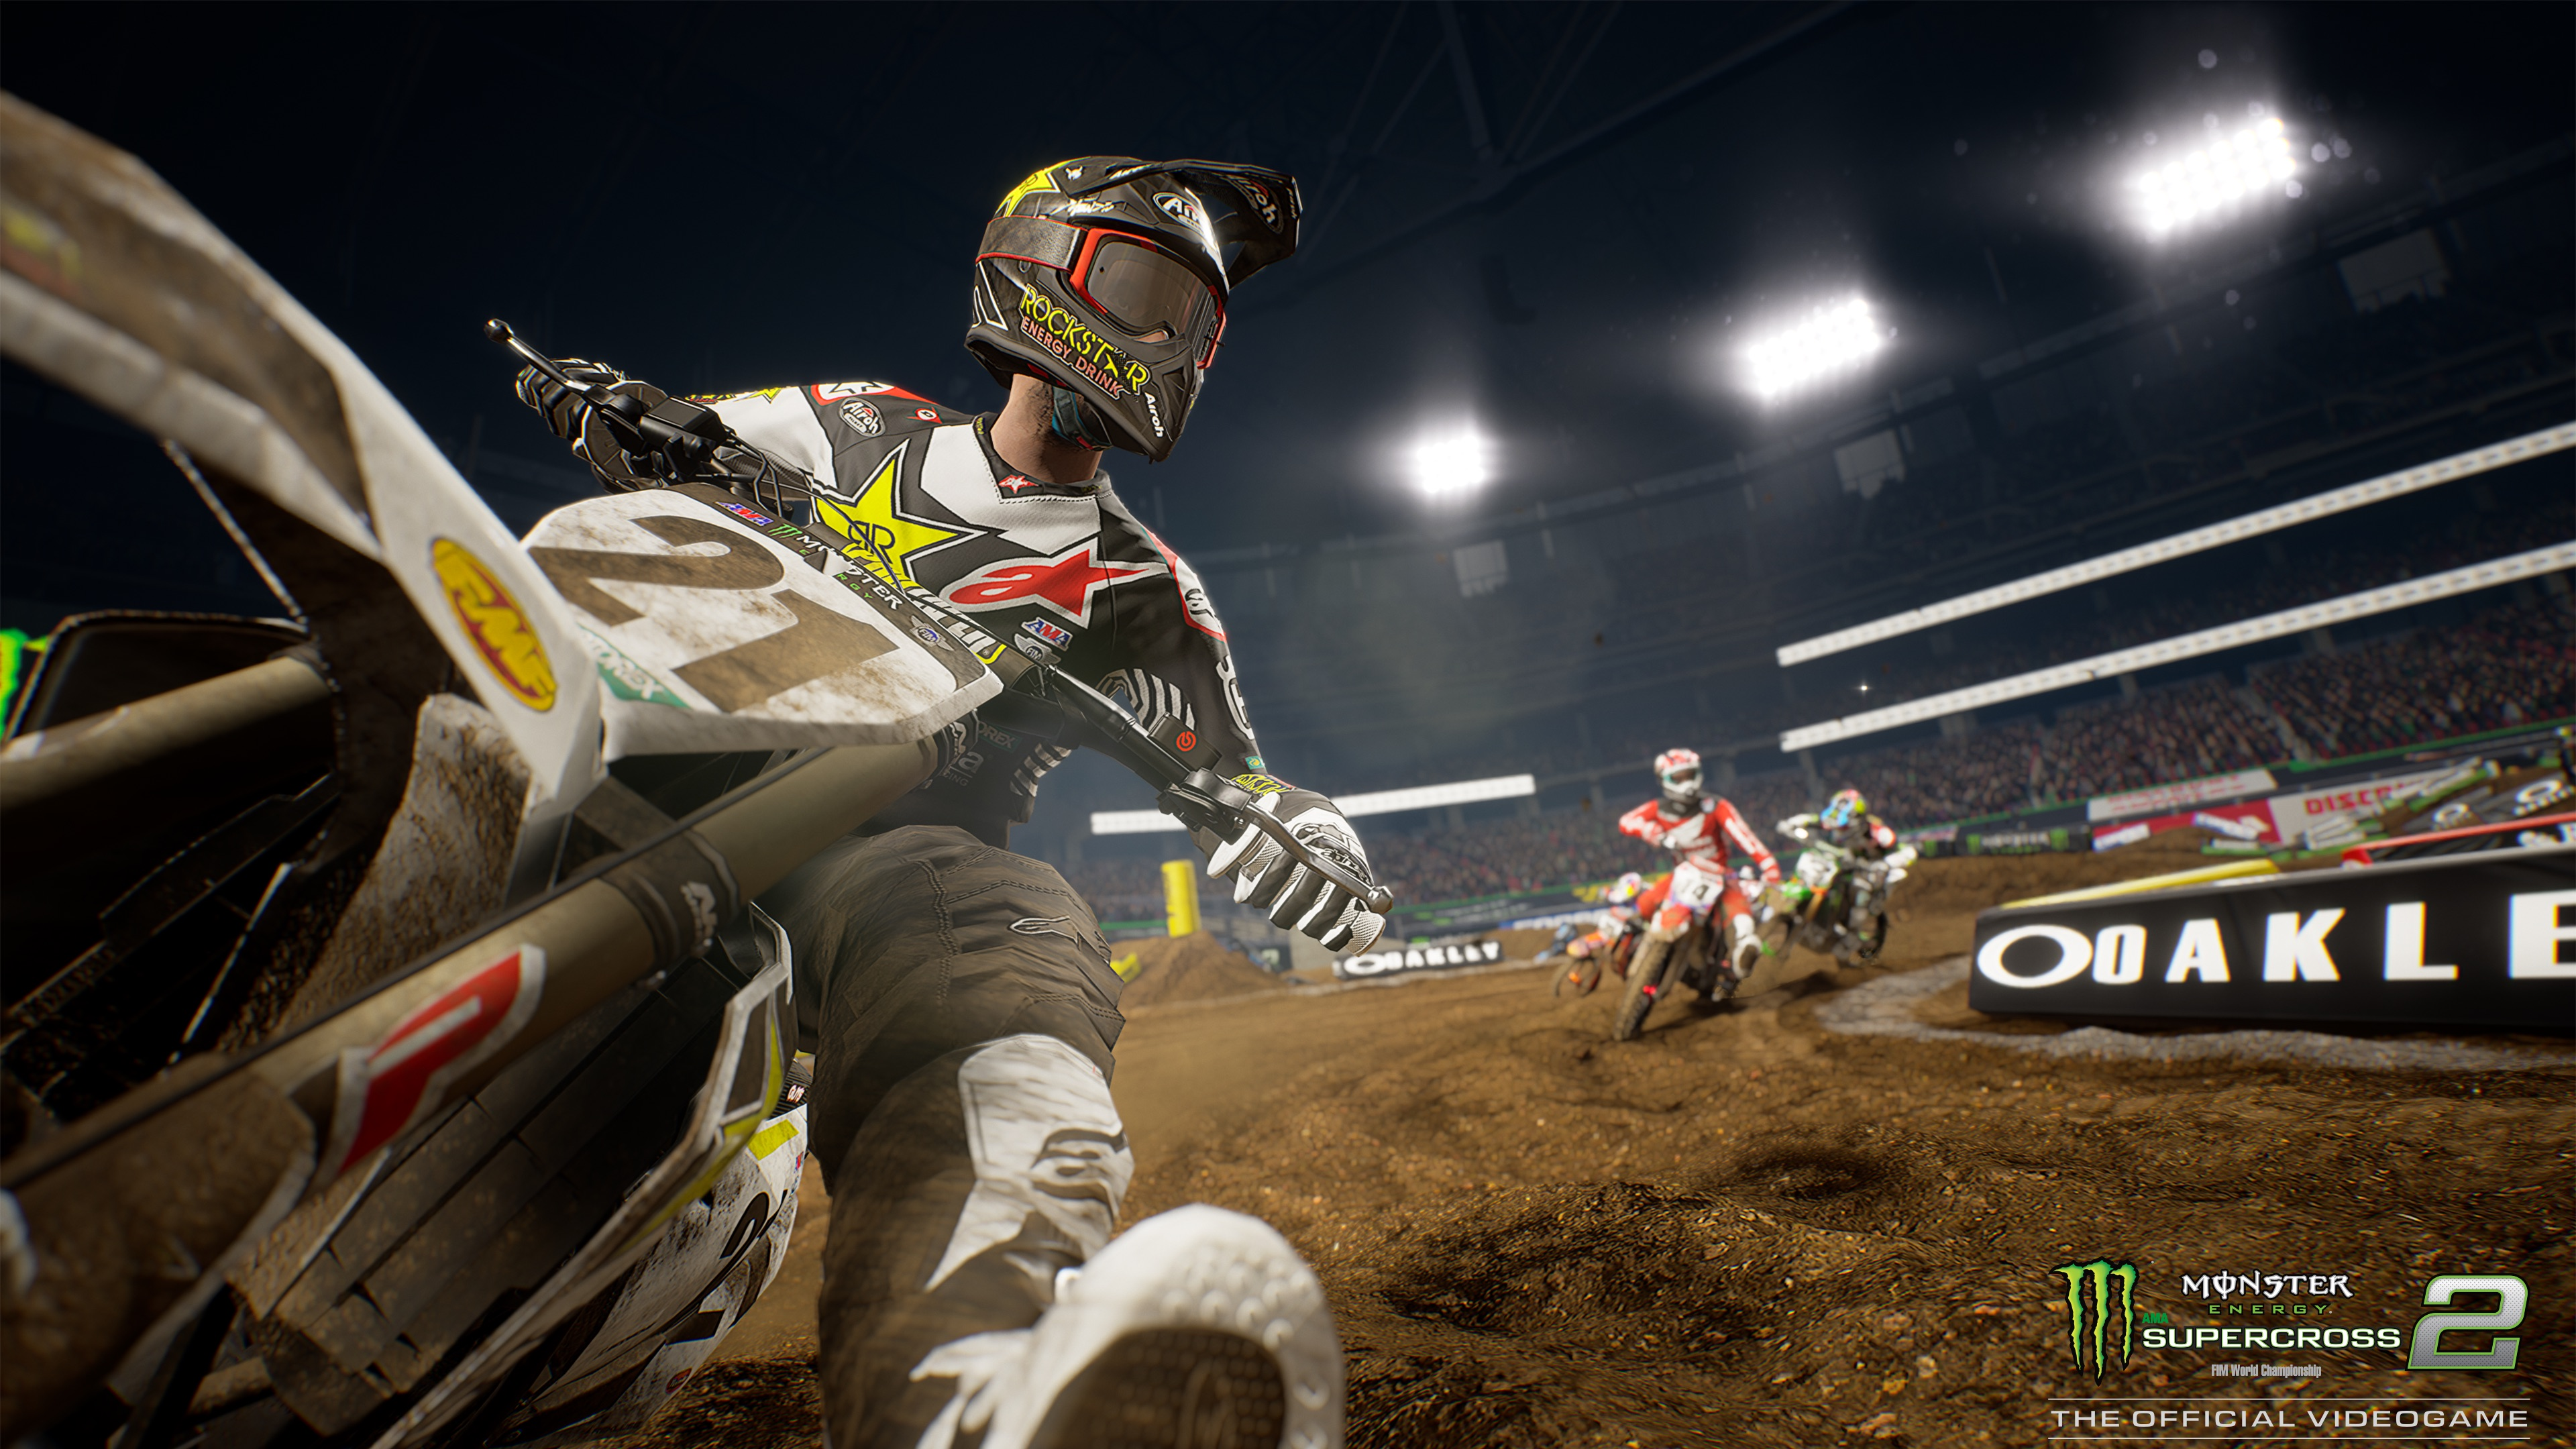 monster energy supercross 2 the official video game review